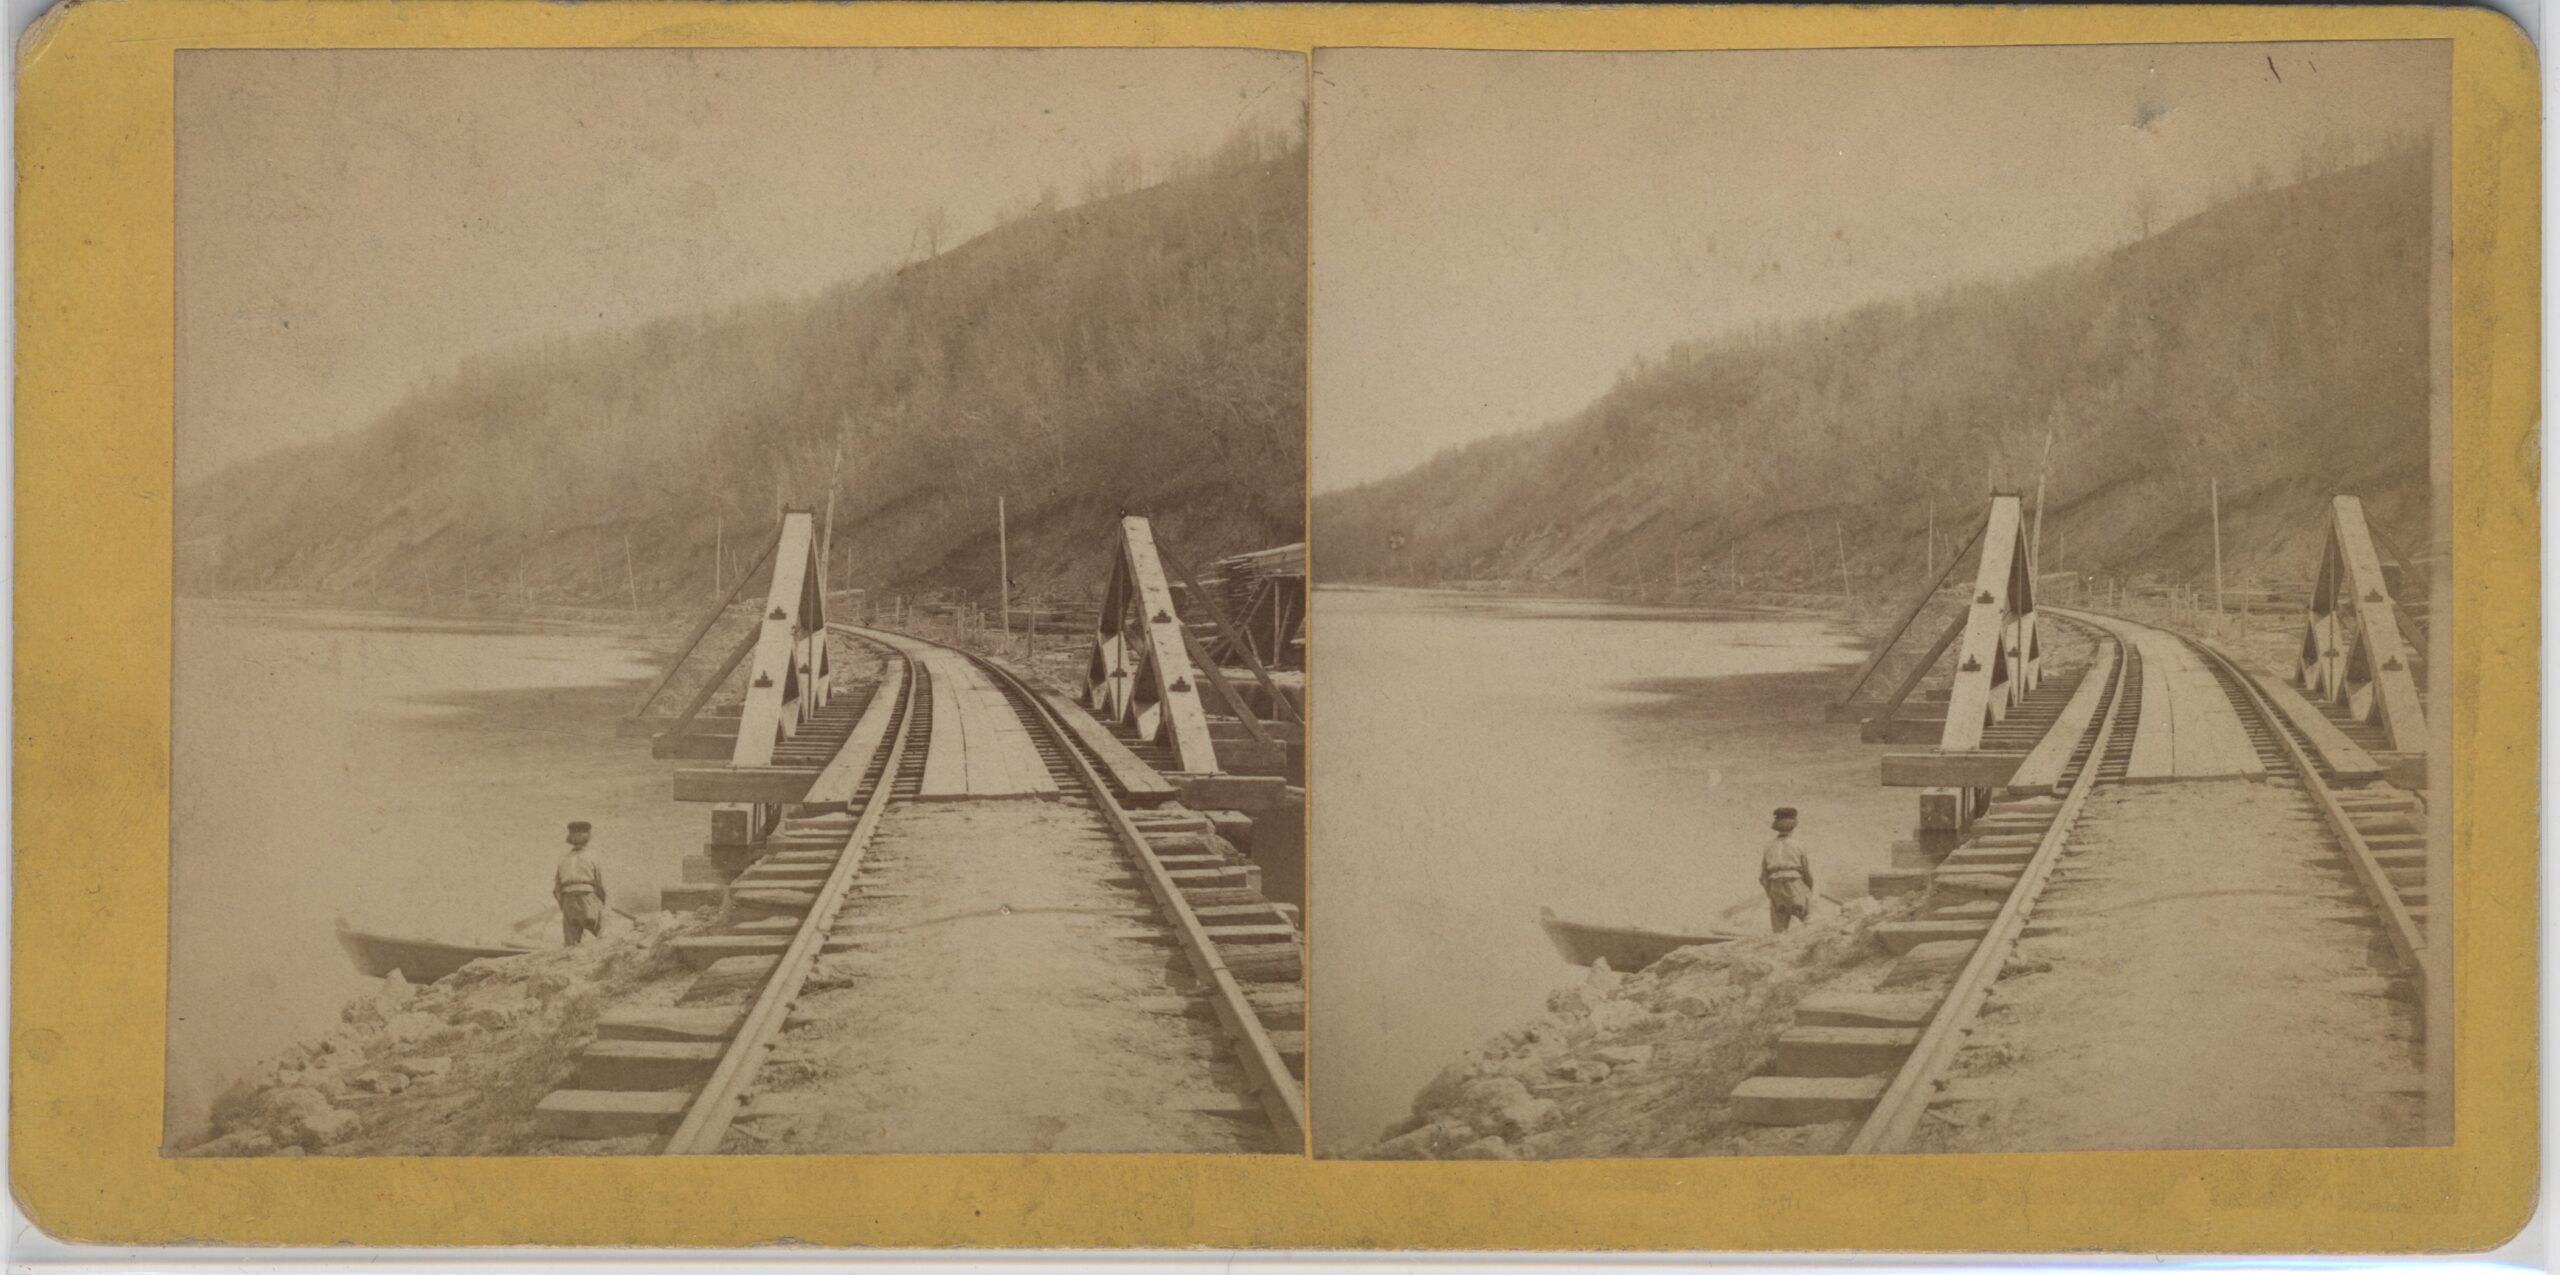 LJTP 100.245 - S. Root - Railroad Tracks South of Dubuque - c1870